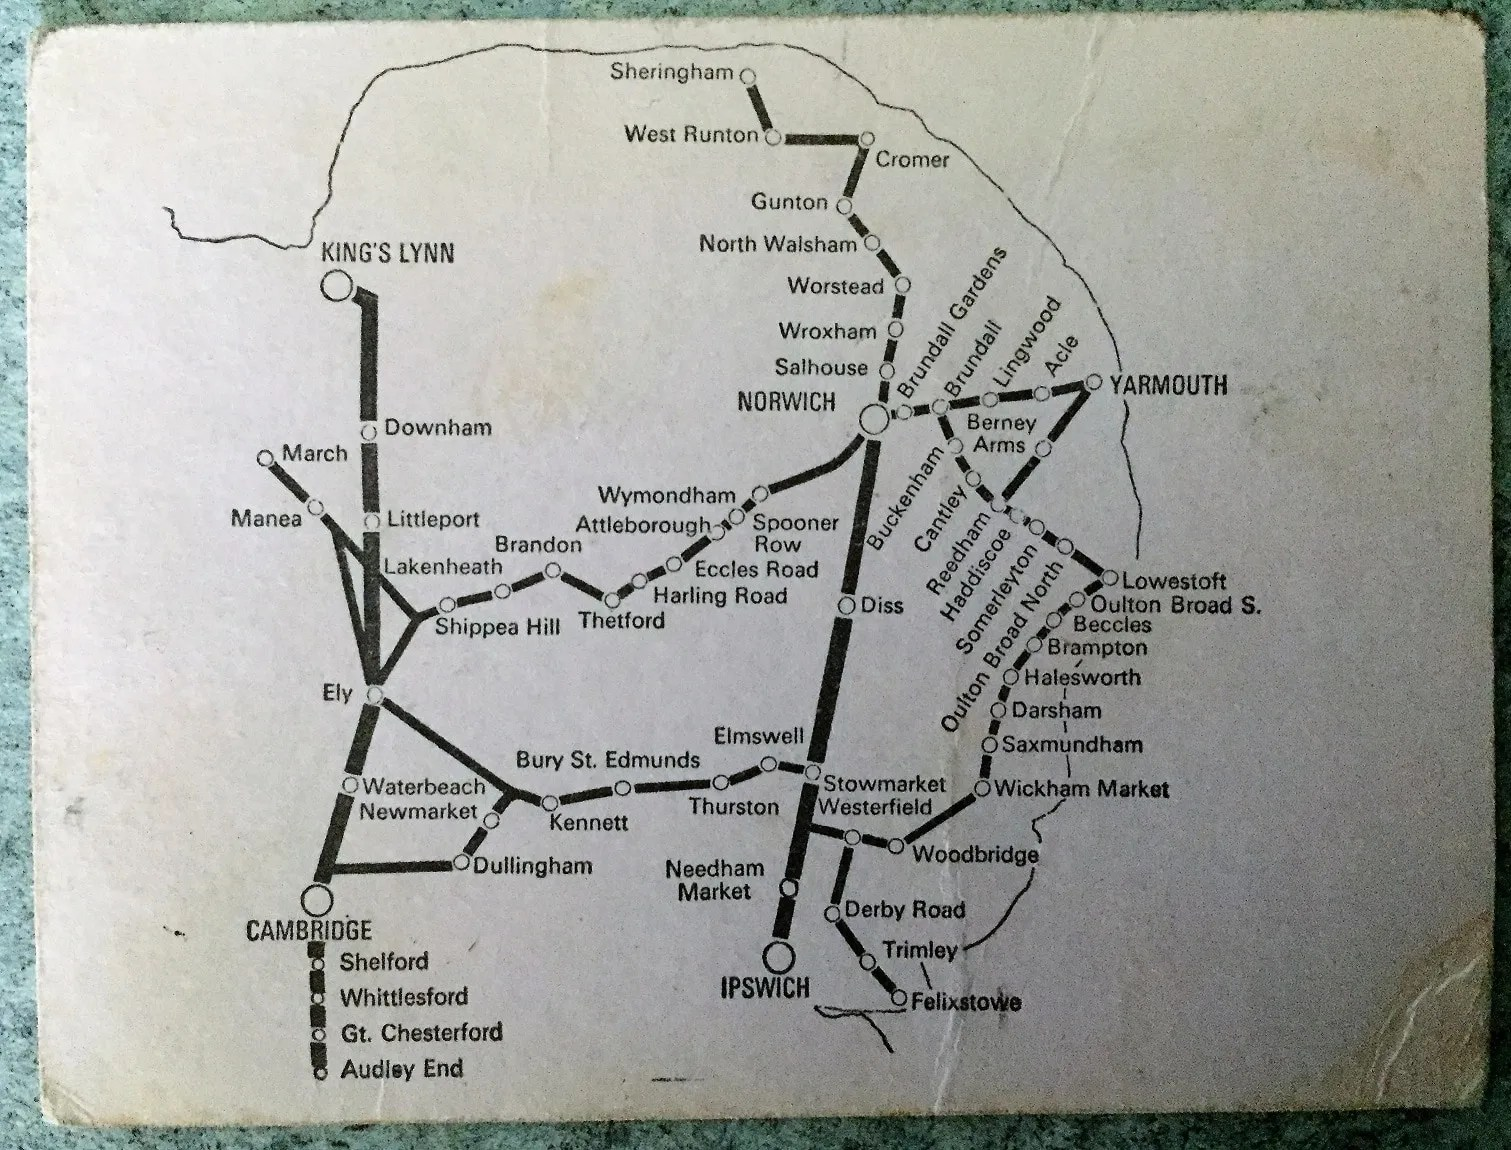 Rear of Anglian Ranger ticket showing area covered by the British Rail Eastern Region Rover